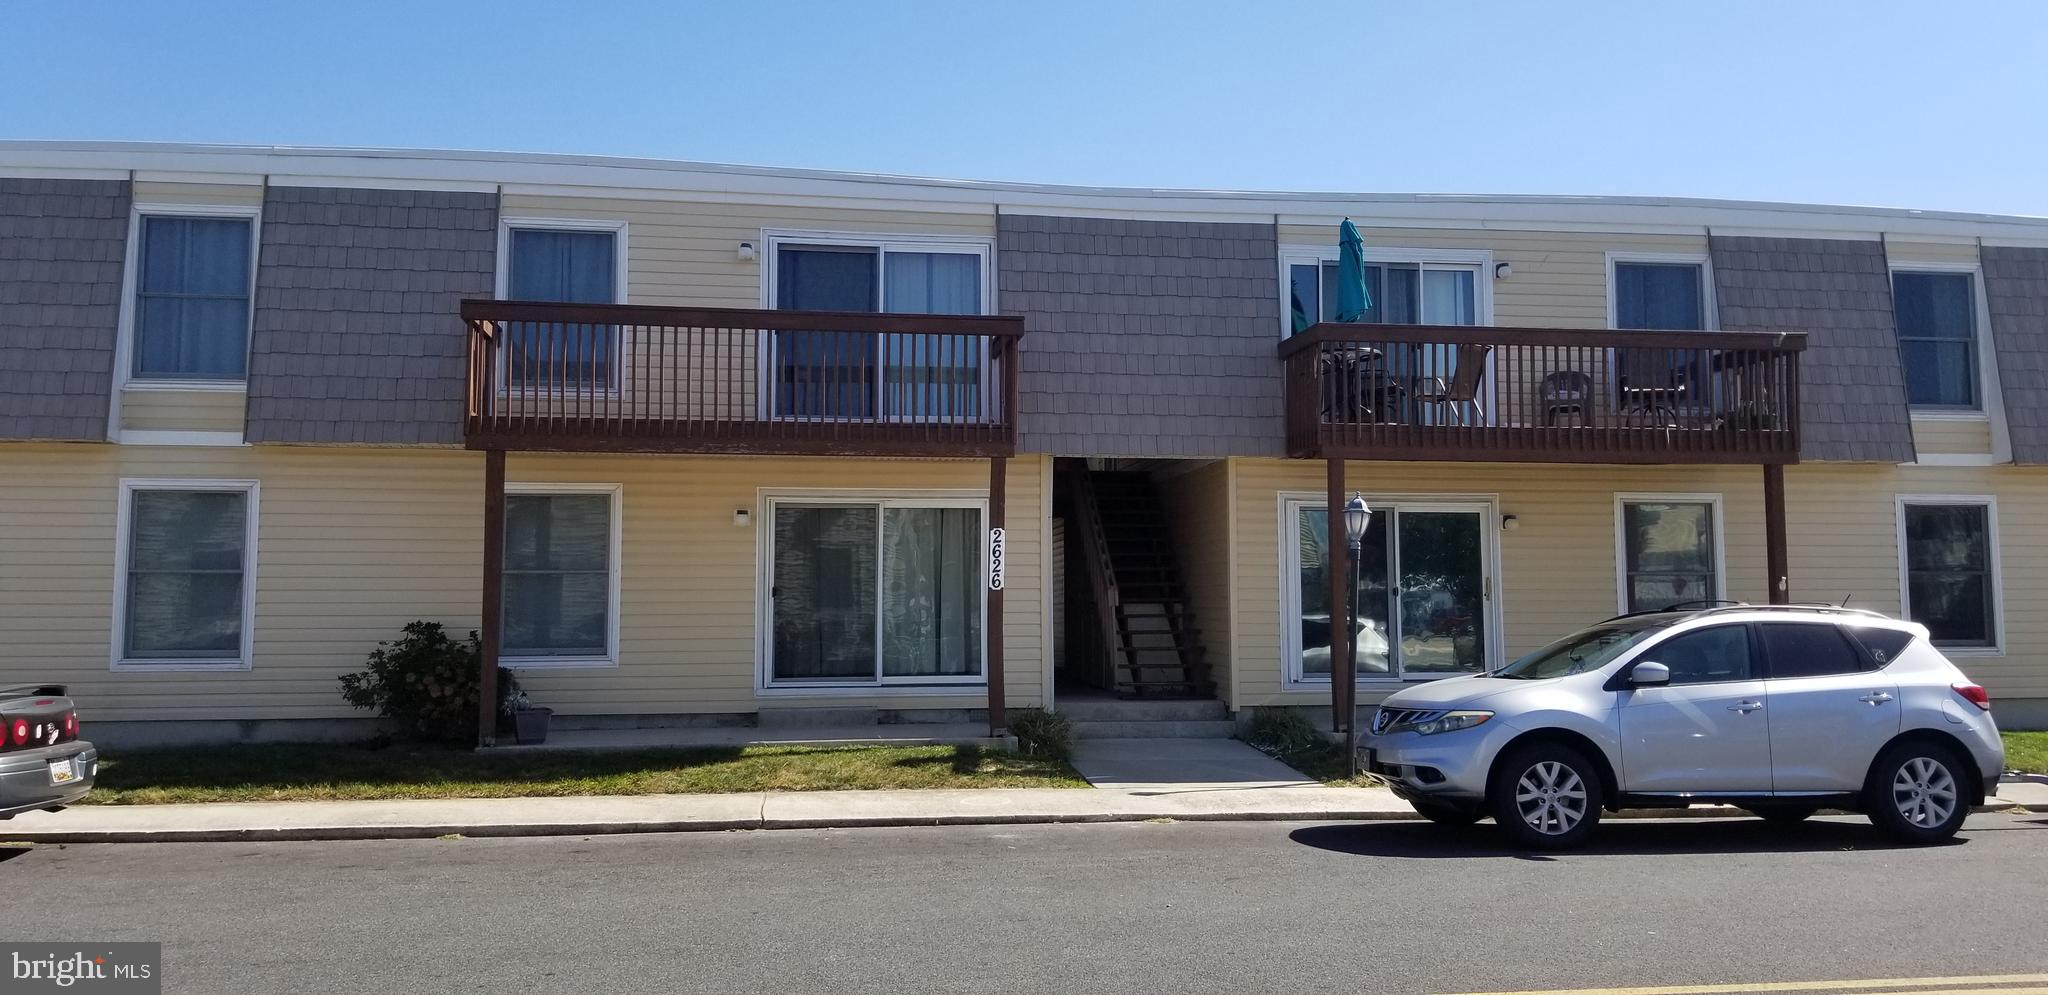 Address Not Disclosed, Ocean City, MD, 21842